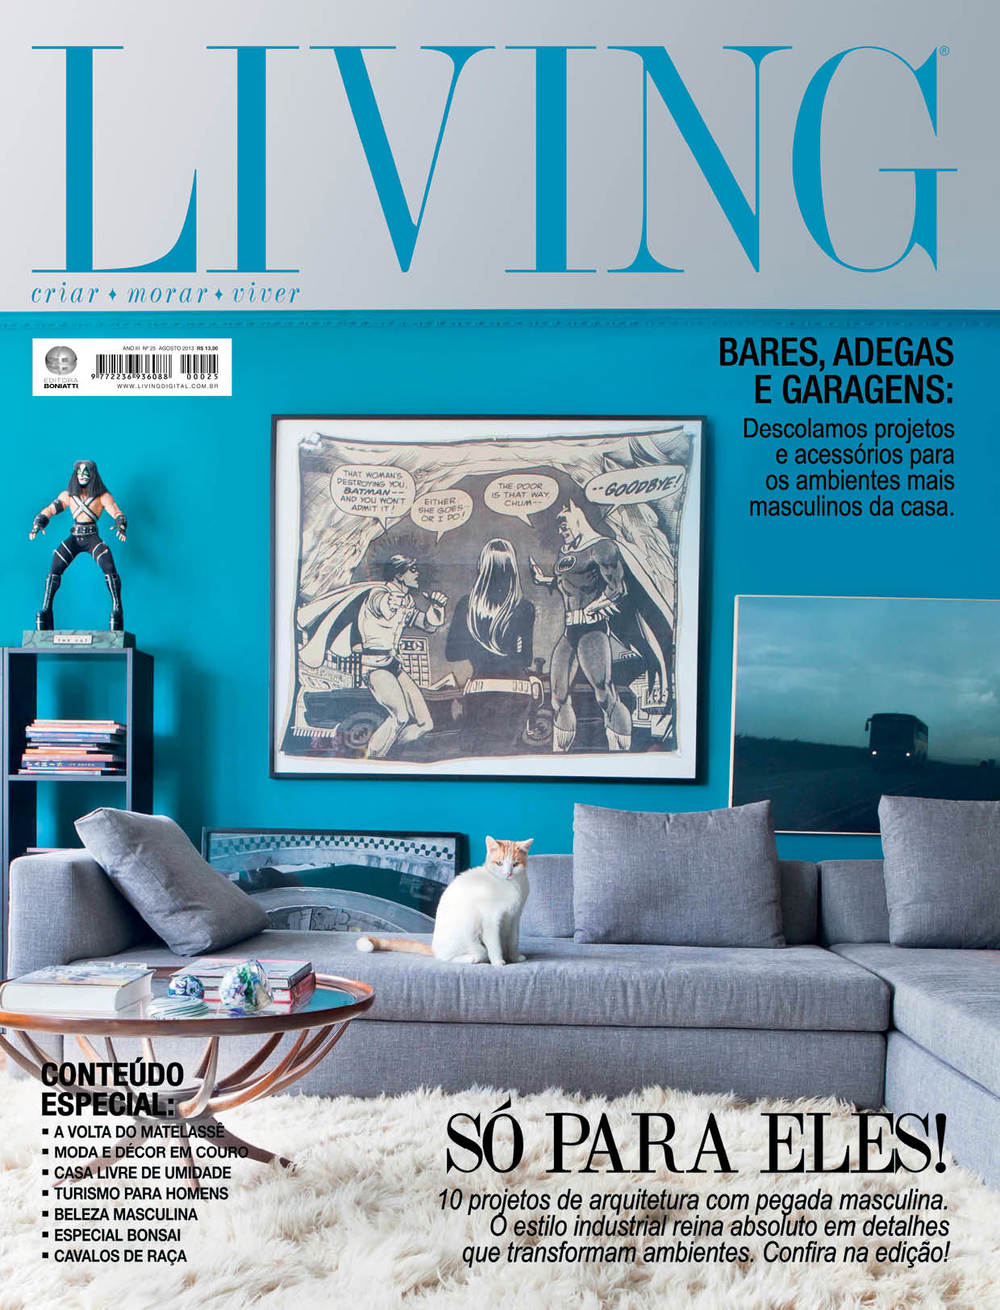 RevistaLiving_ed25_agosto2013_.jpg